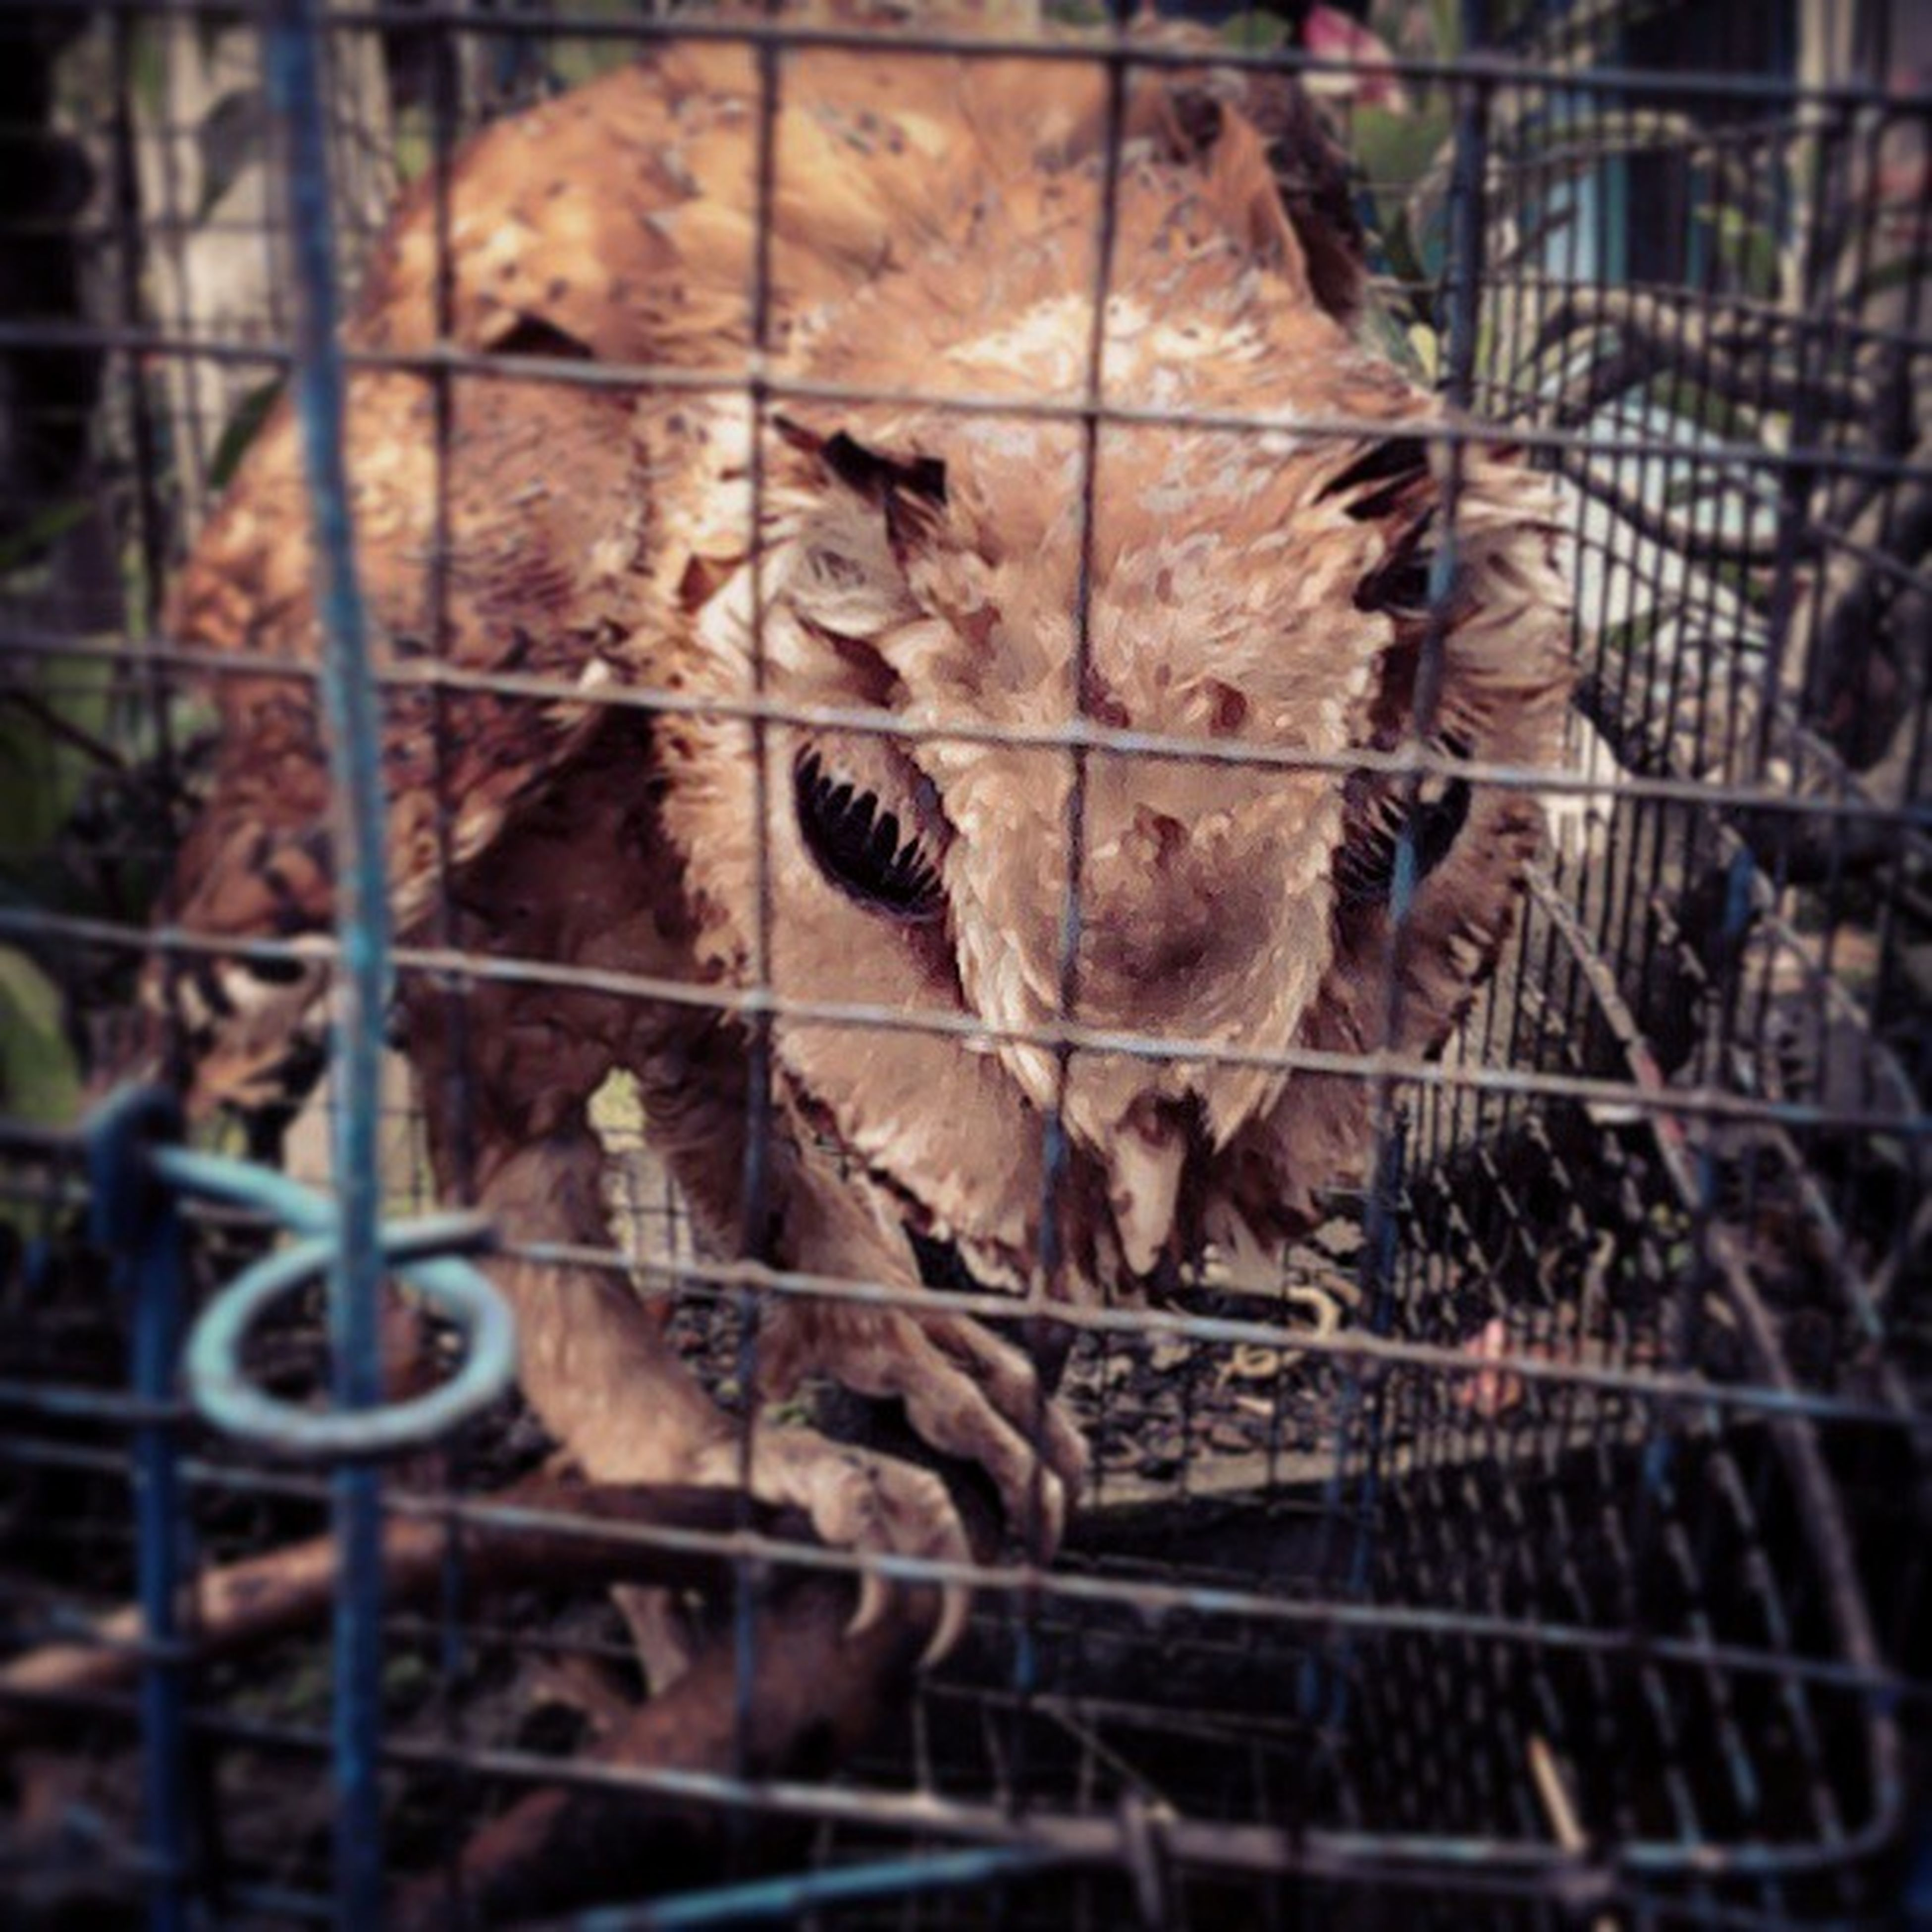 animal themes, one animal, wildlife, mammal, animals in the wild, cage, fence, metal, chainlink fence, animals in captivity, close-up, zoo, no people, domestic animals, outdoors, day, focus on foreground, damaged, abandoned, two animals